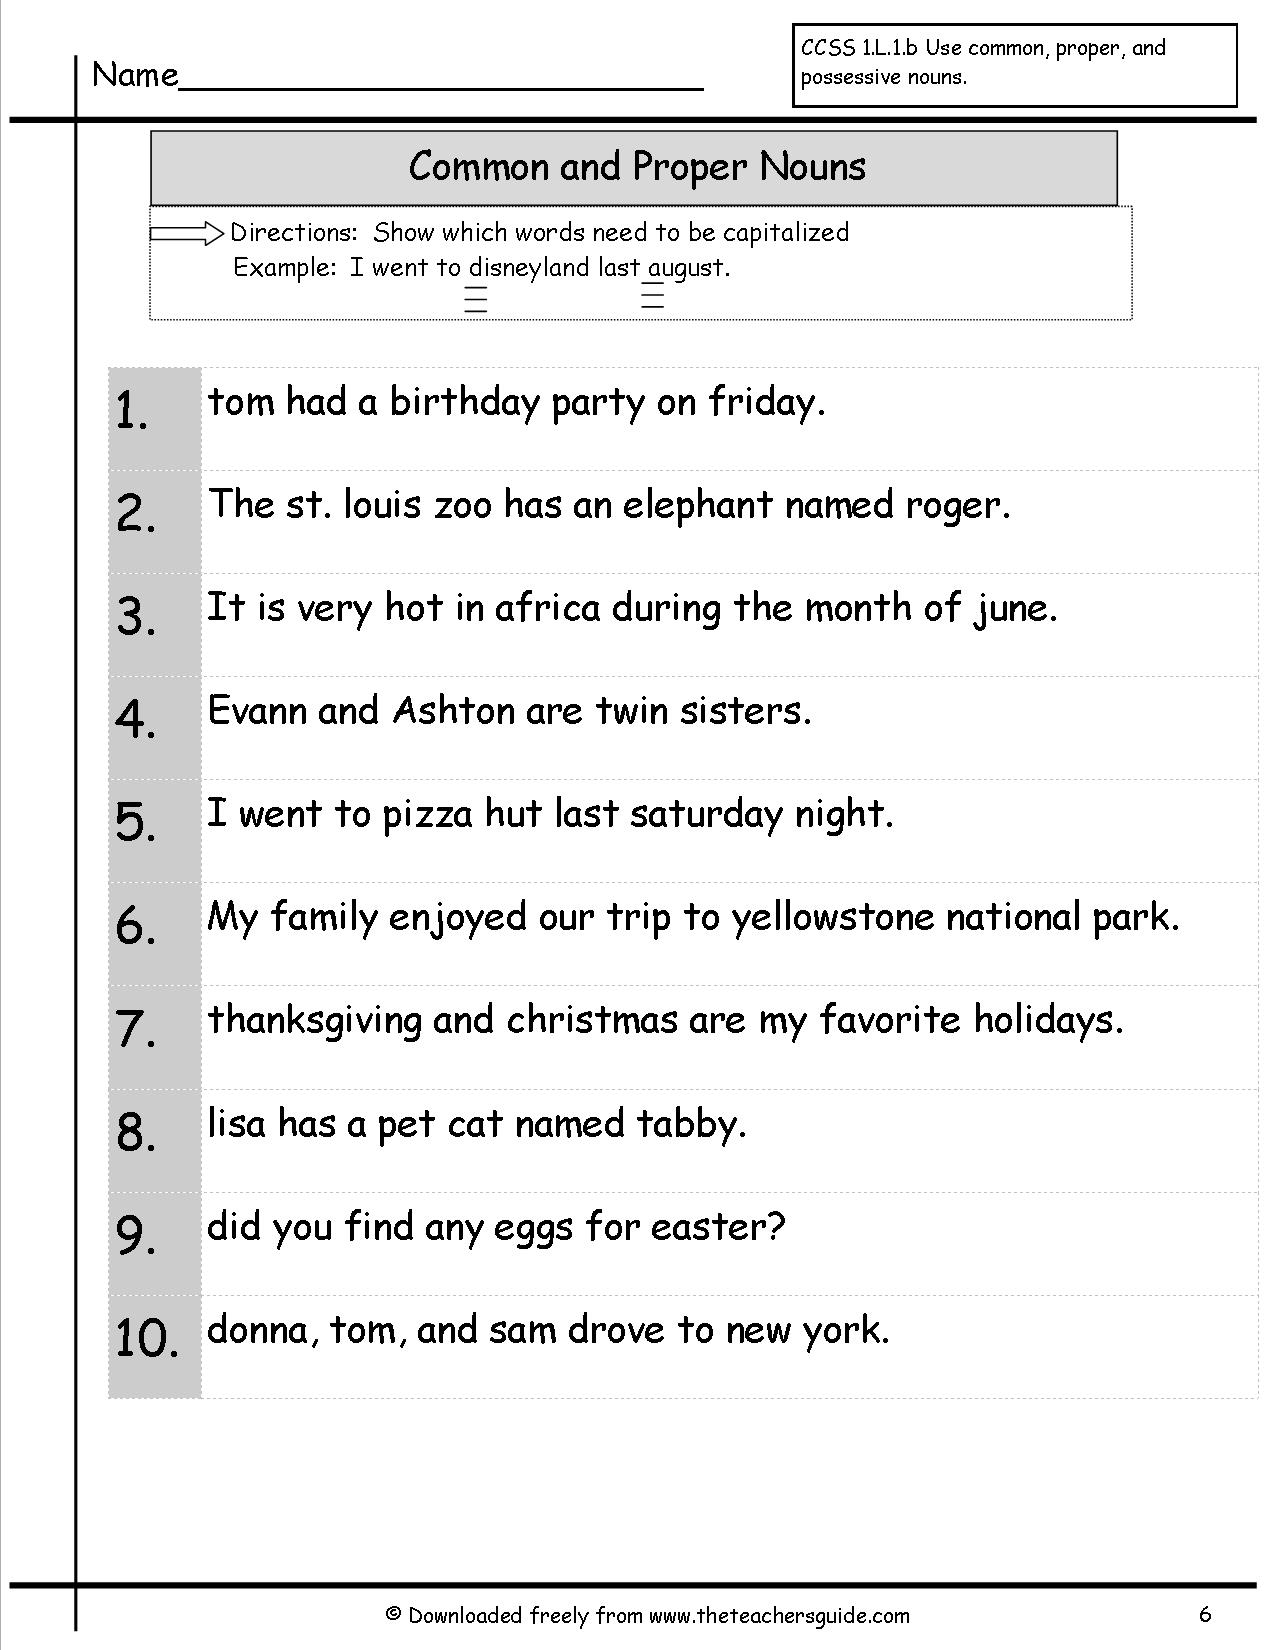 13 Best Images Of Common And Proper Nouns Worksheets